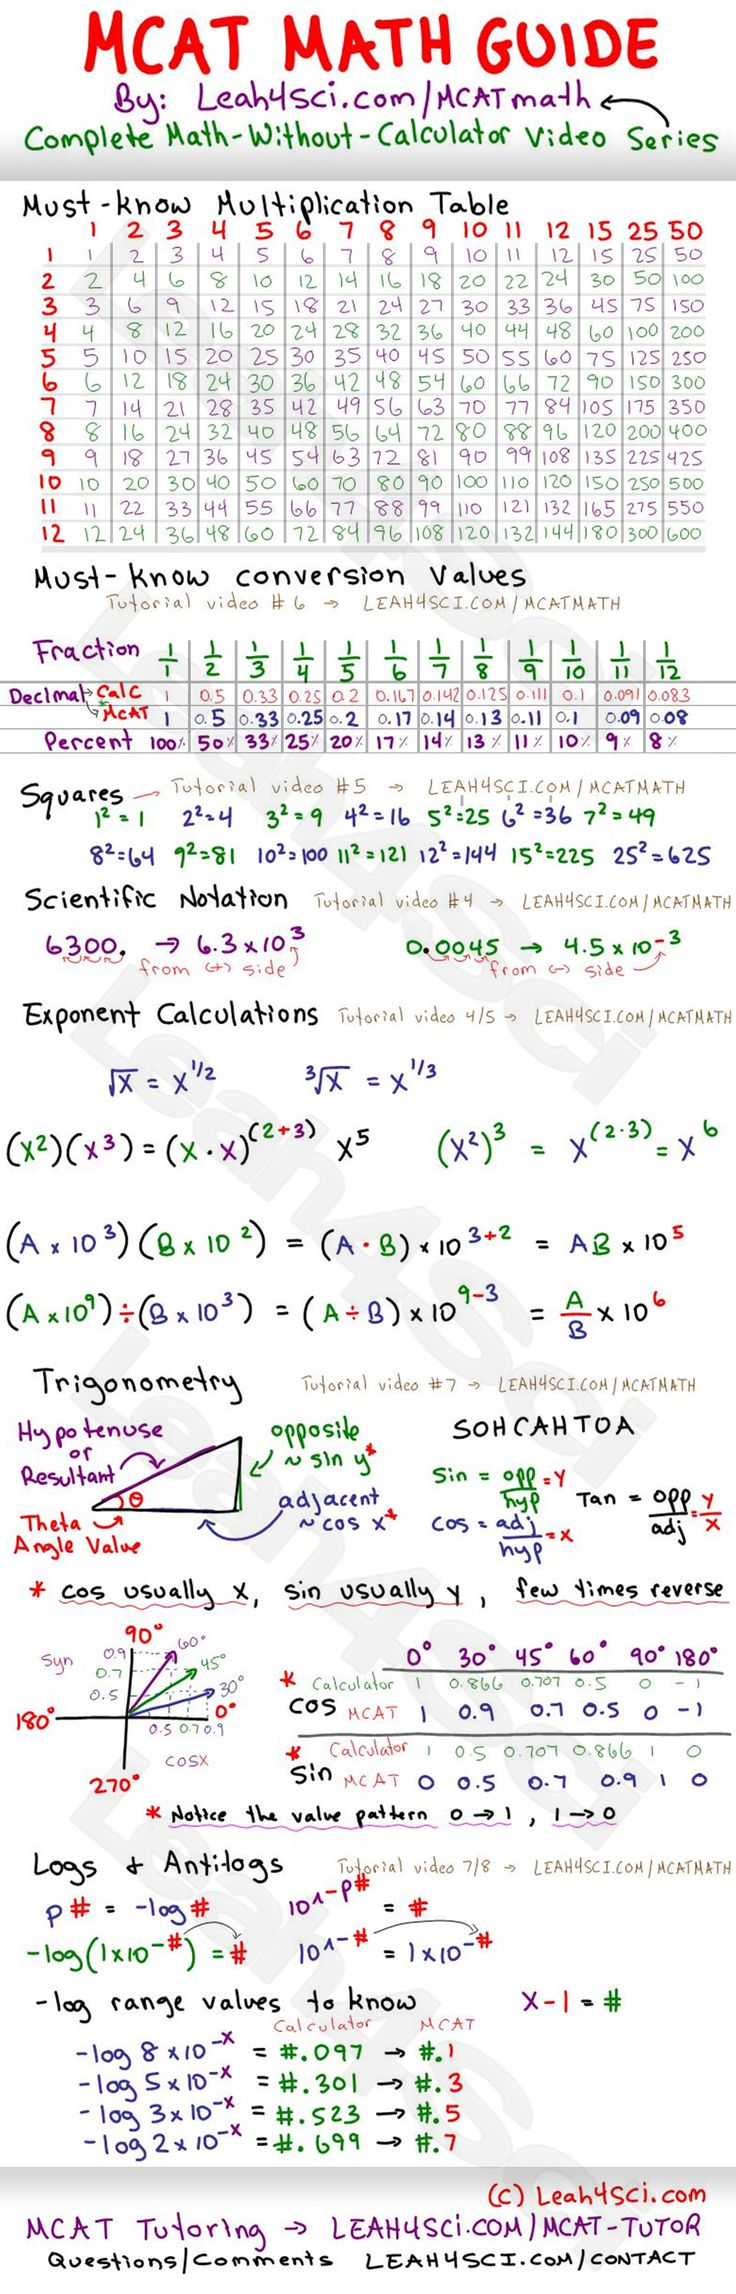 best ideas about math help life hacks math check out this mcat math study guide cheat sheet